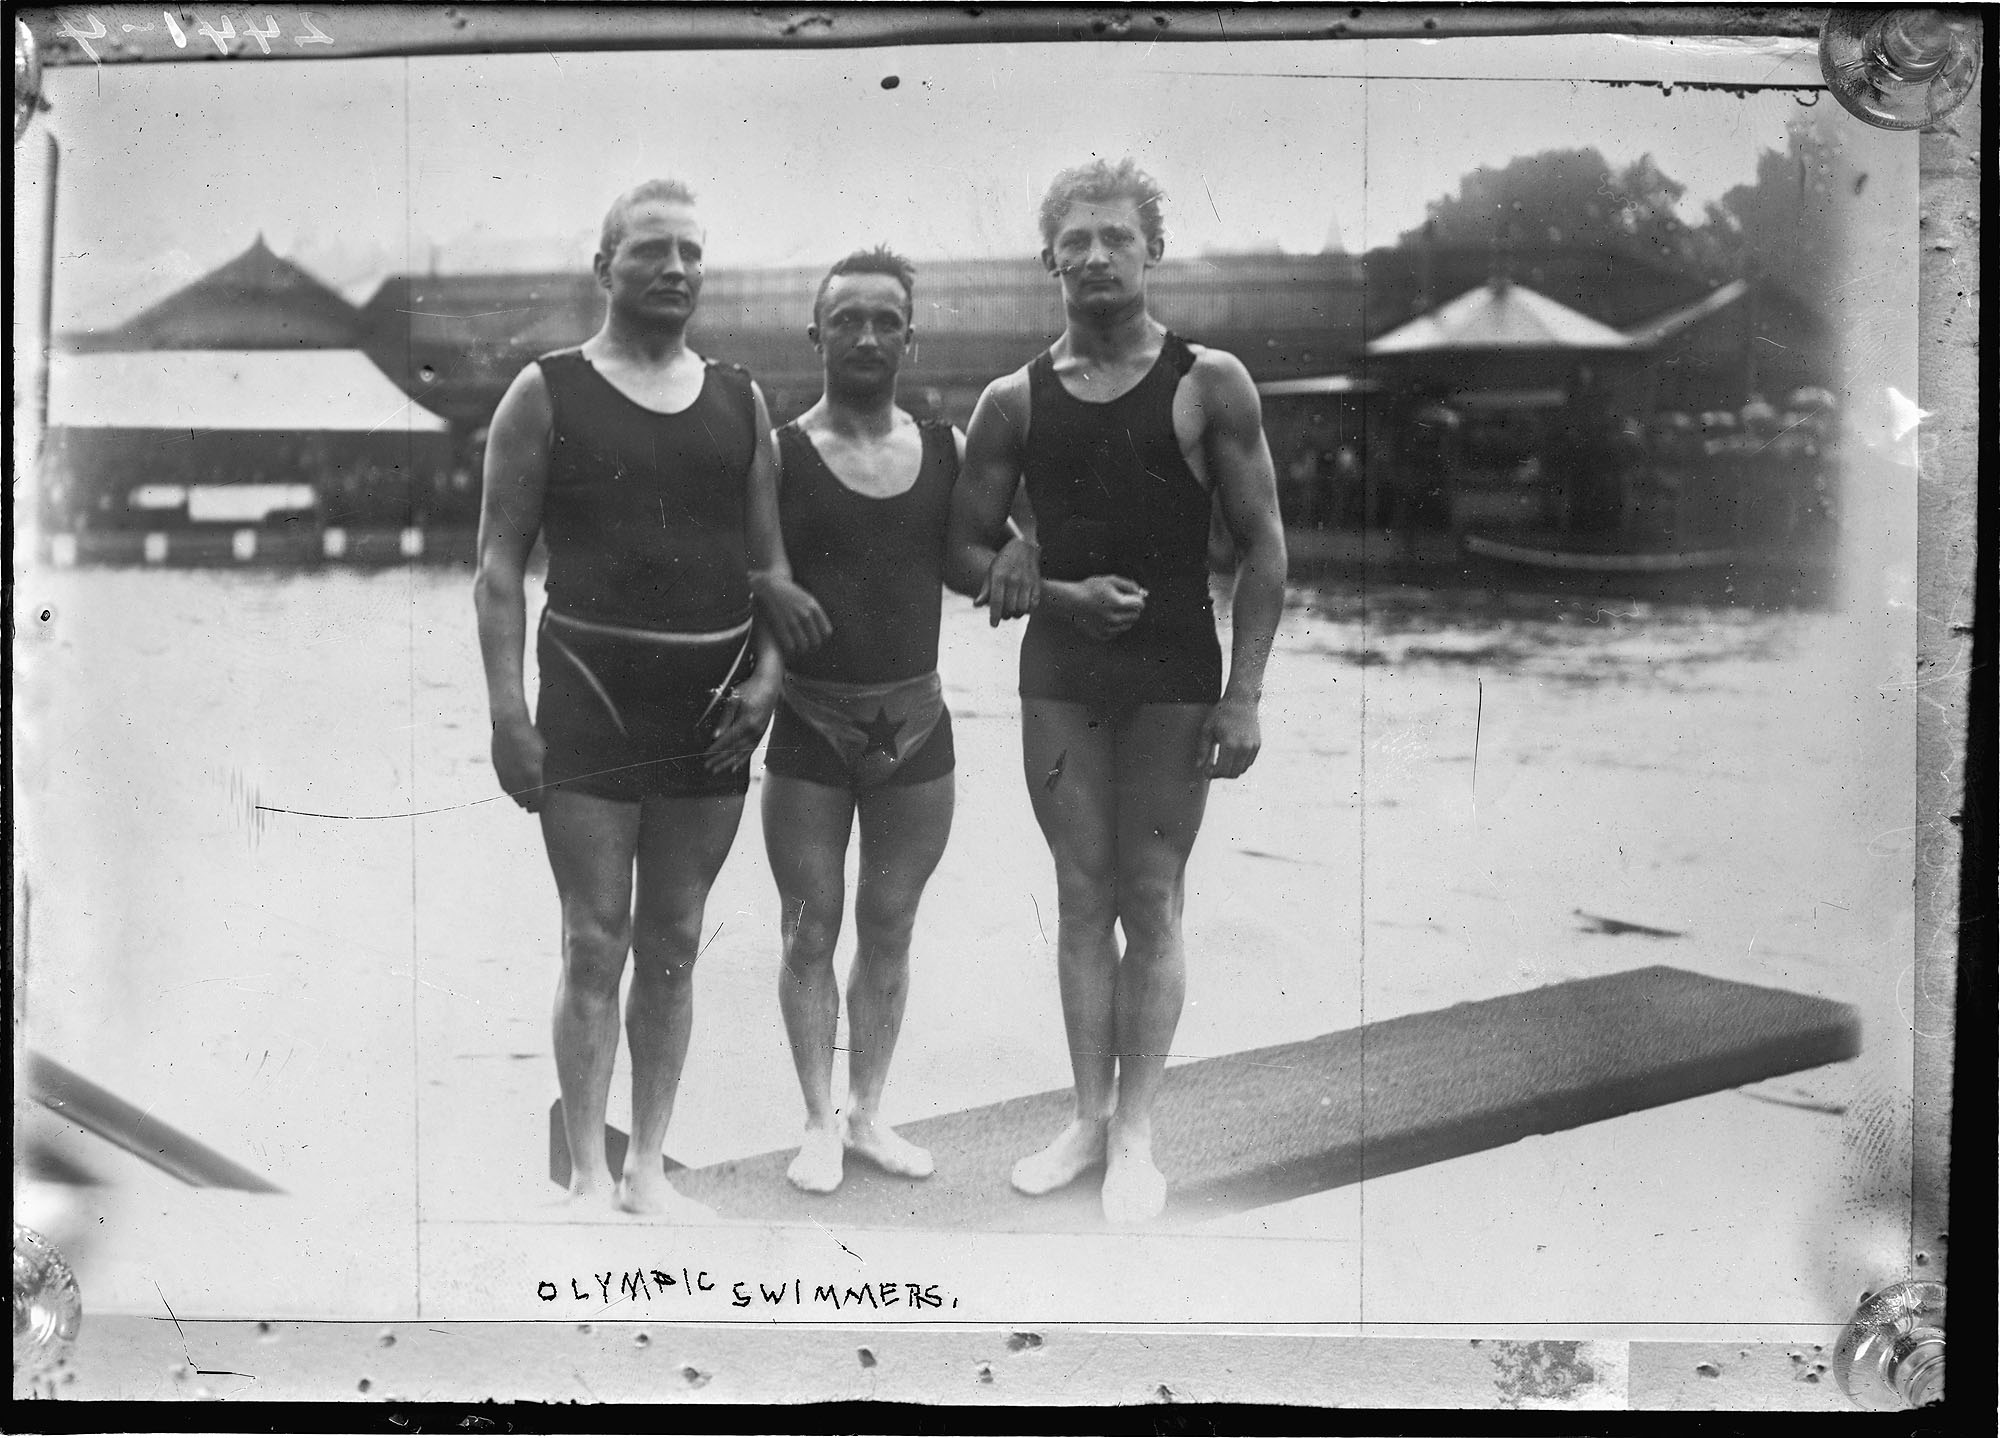 Olympic Swimmers - 1912 Summer Olympics in Stockholm, Sweden